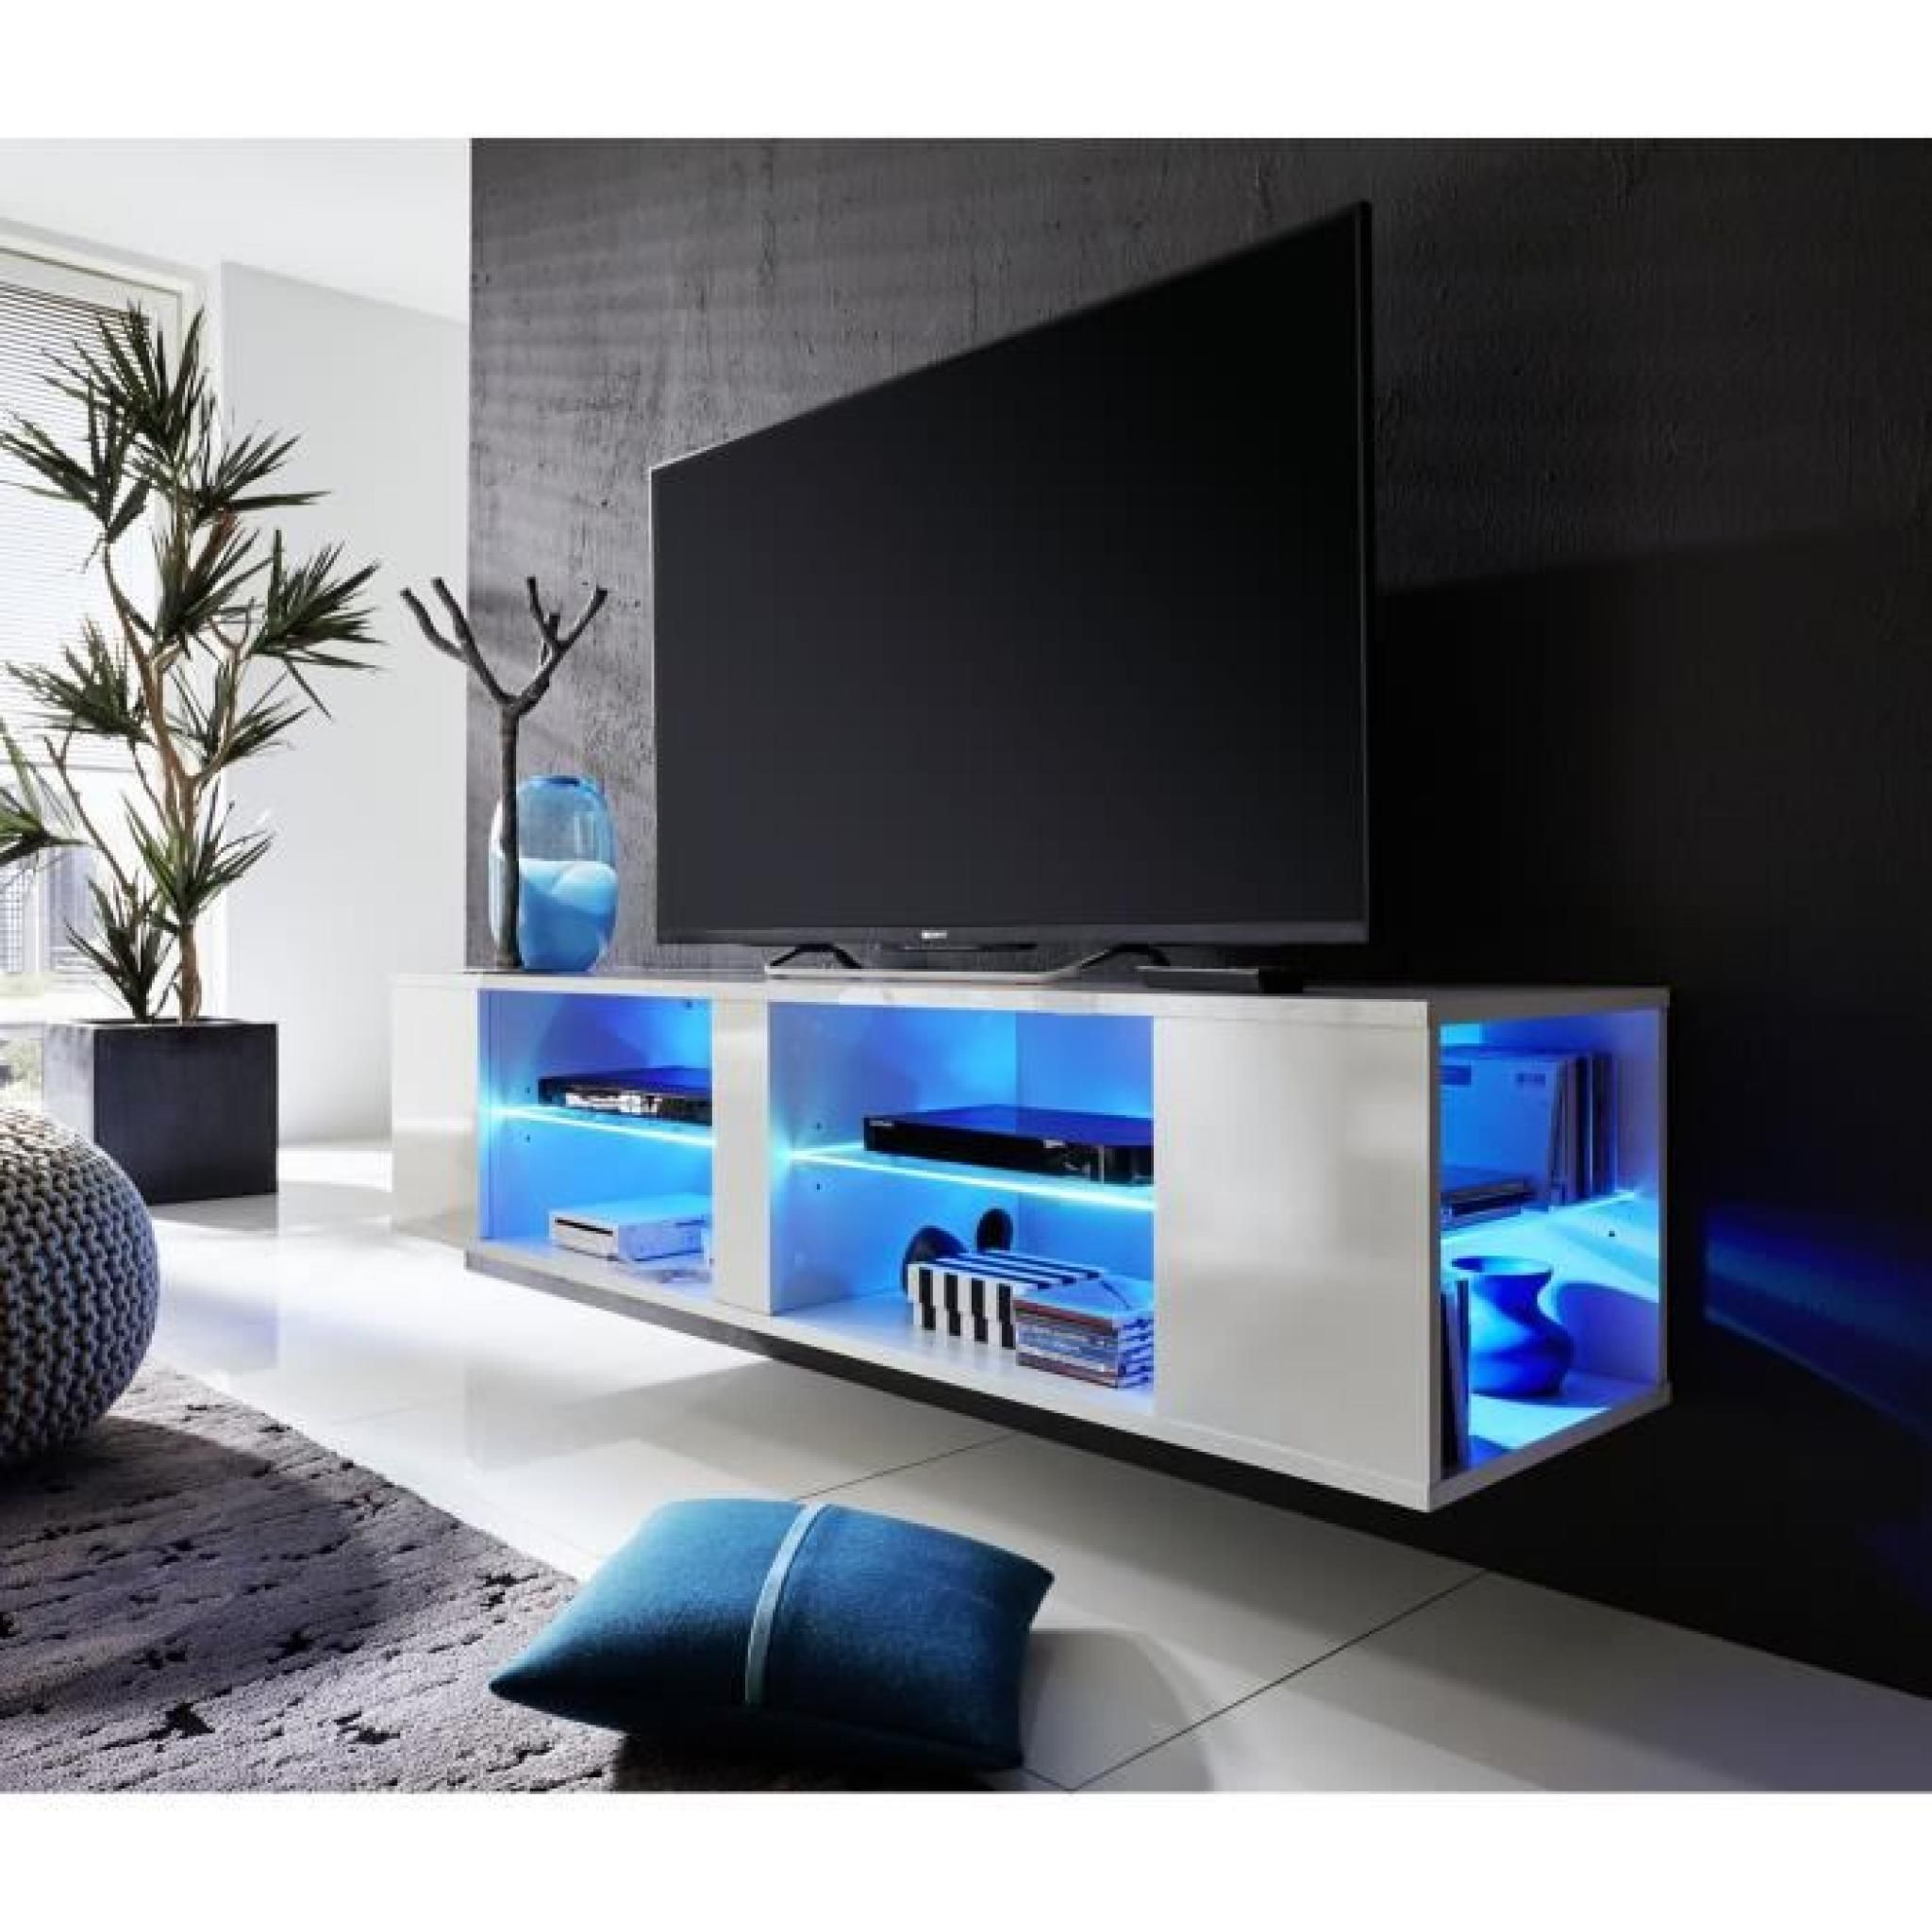 Tonnant Meuble Tv Suspendu Led D Coration Fran Aise Pinterest  # Amenagement Tele Meuble Suspendu